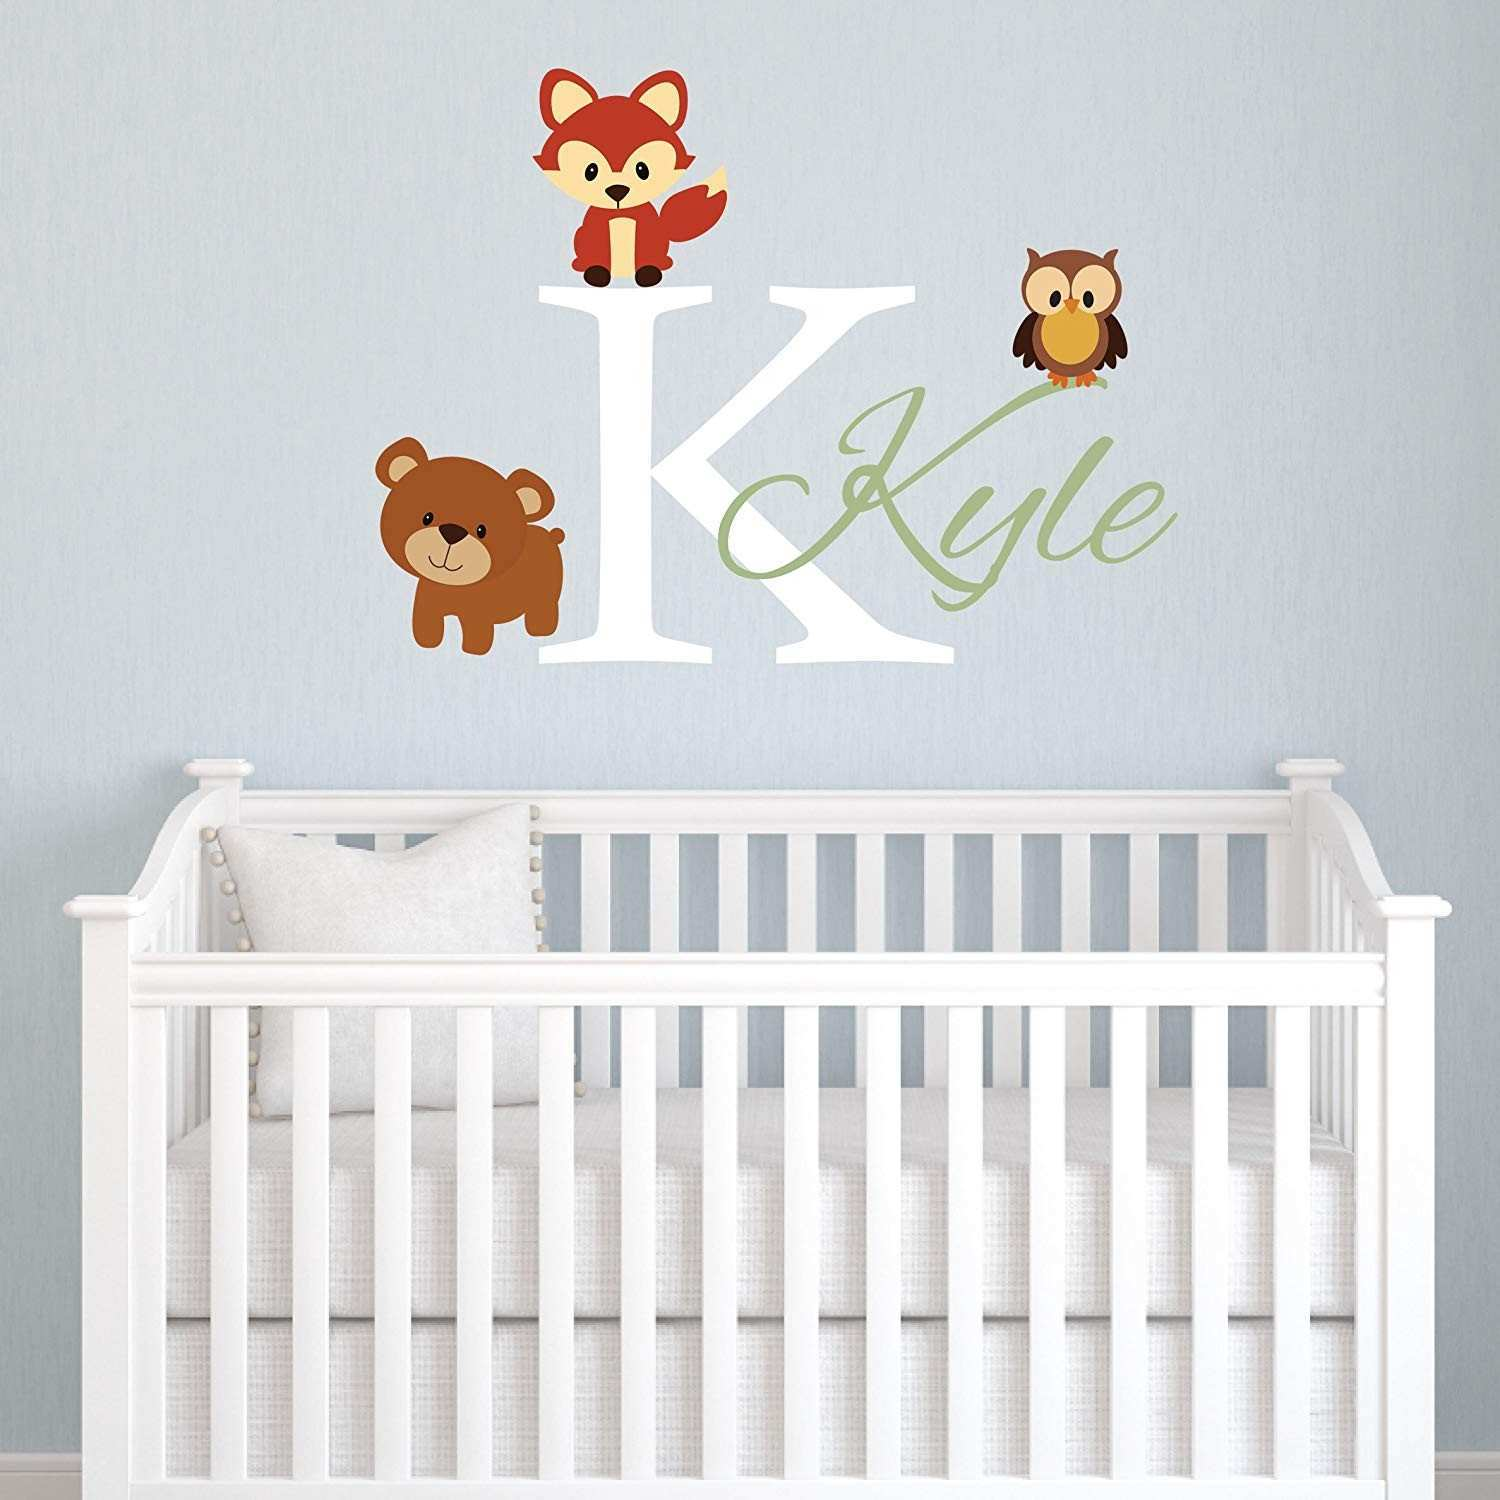 Leopard Print Decals for Walls Awesome Amazon Animals forest Friends Personalized Kids Name Wall Decal